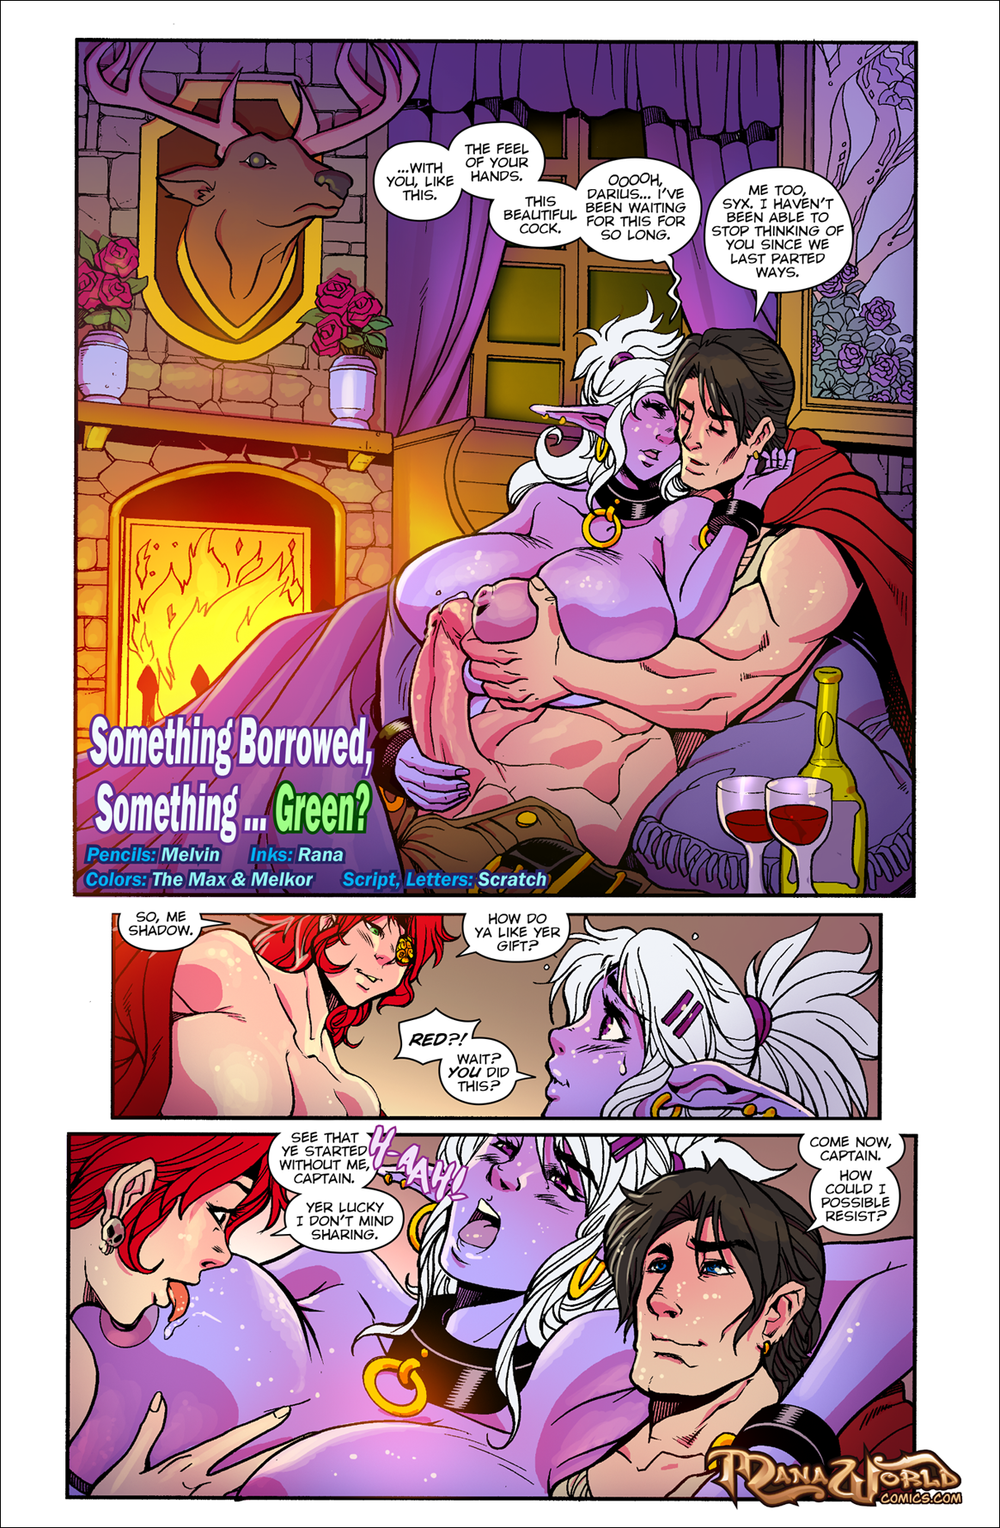 ManaWorldComics – Chapter 17 – Something Borrowed, Something Green